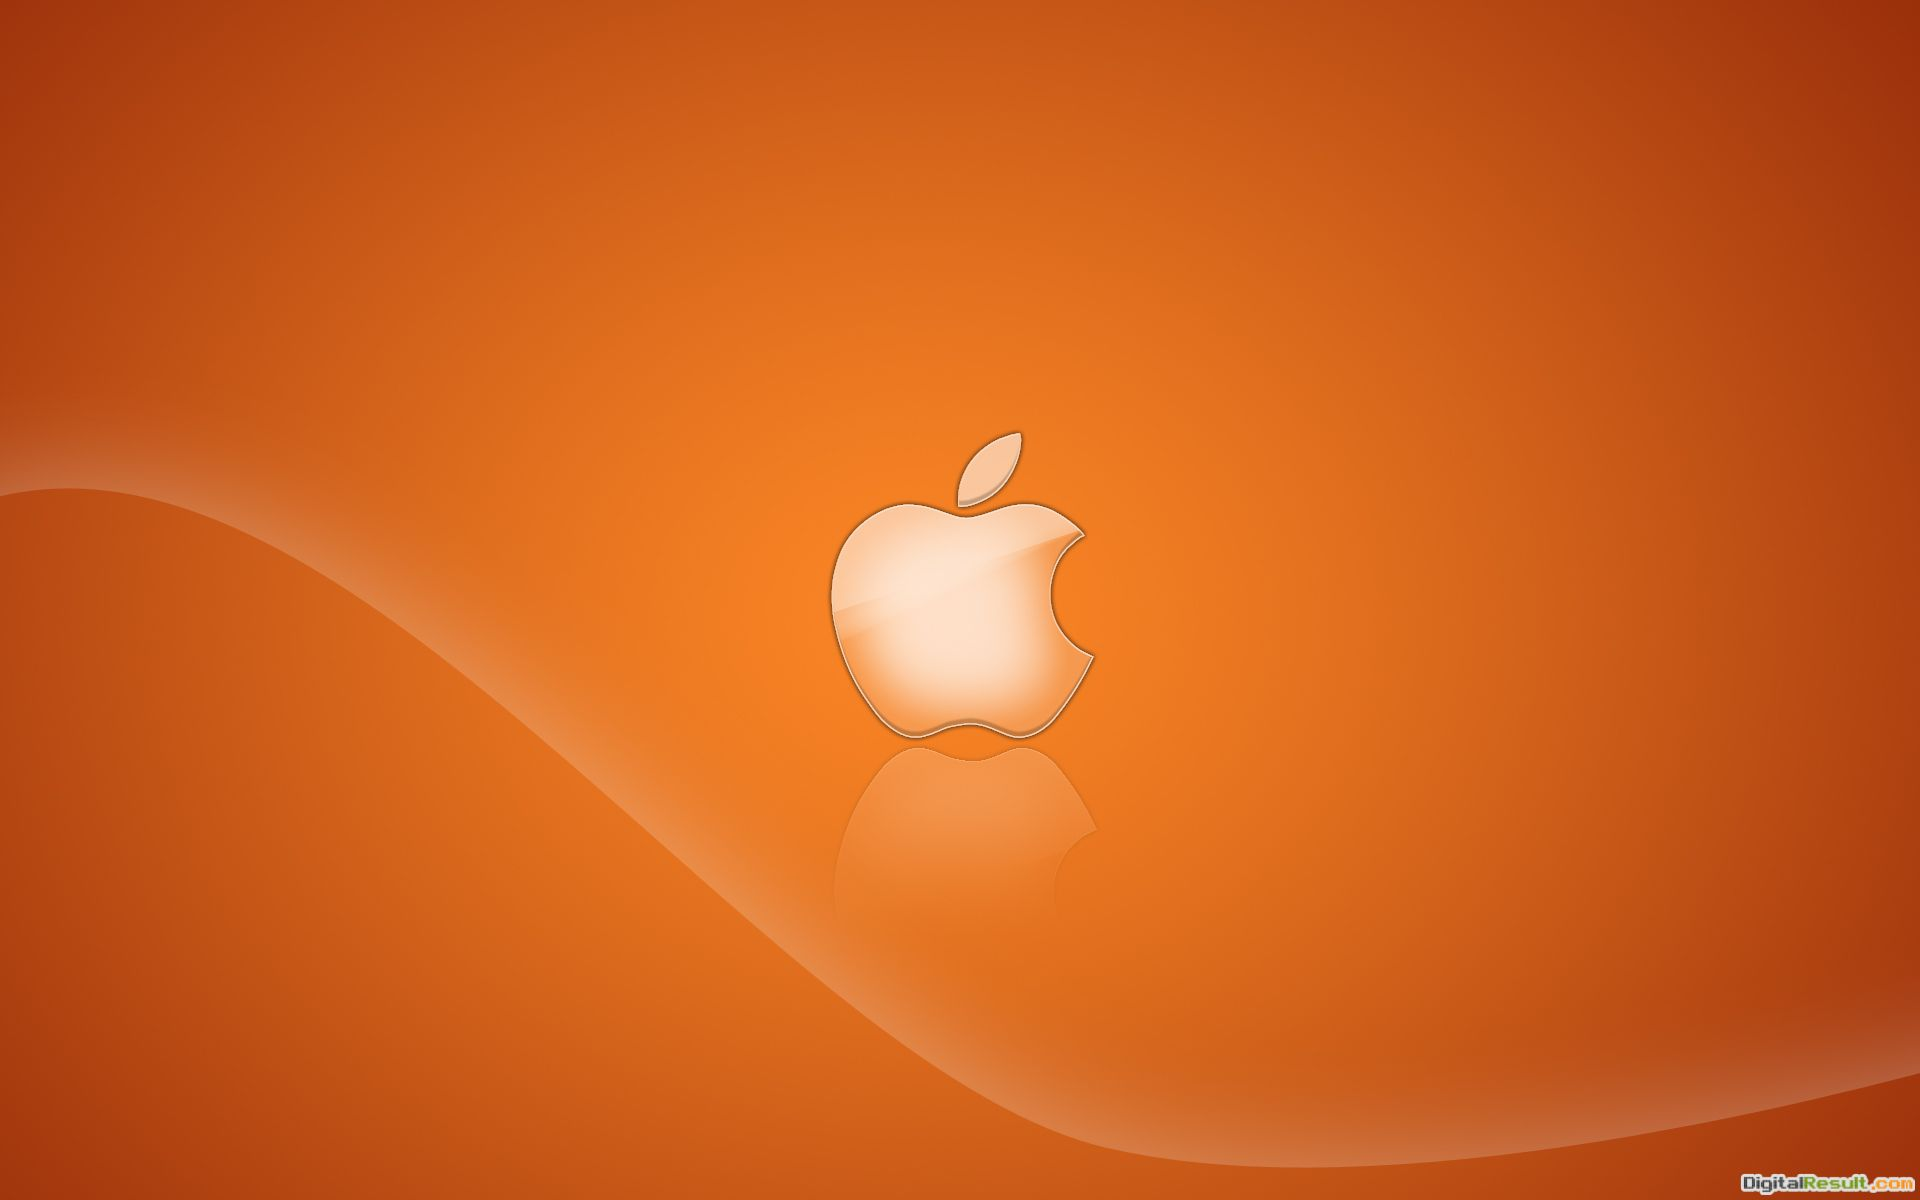 Amazing Apple Orange Logo Wallpaper Background #15849 Wallpaper 847